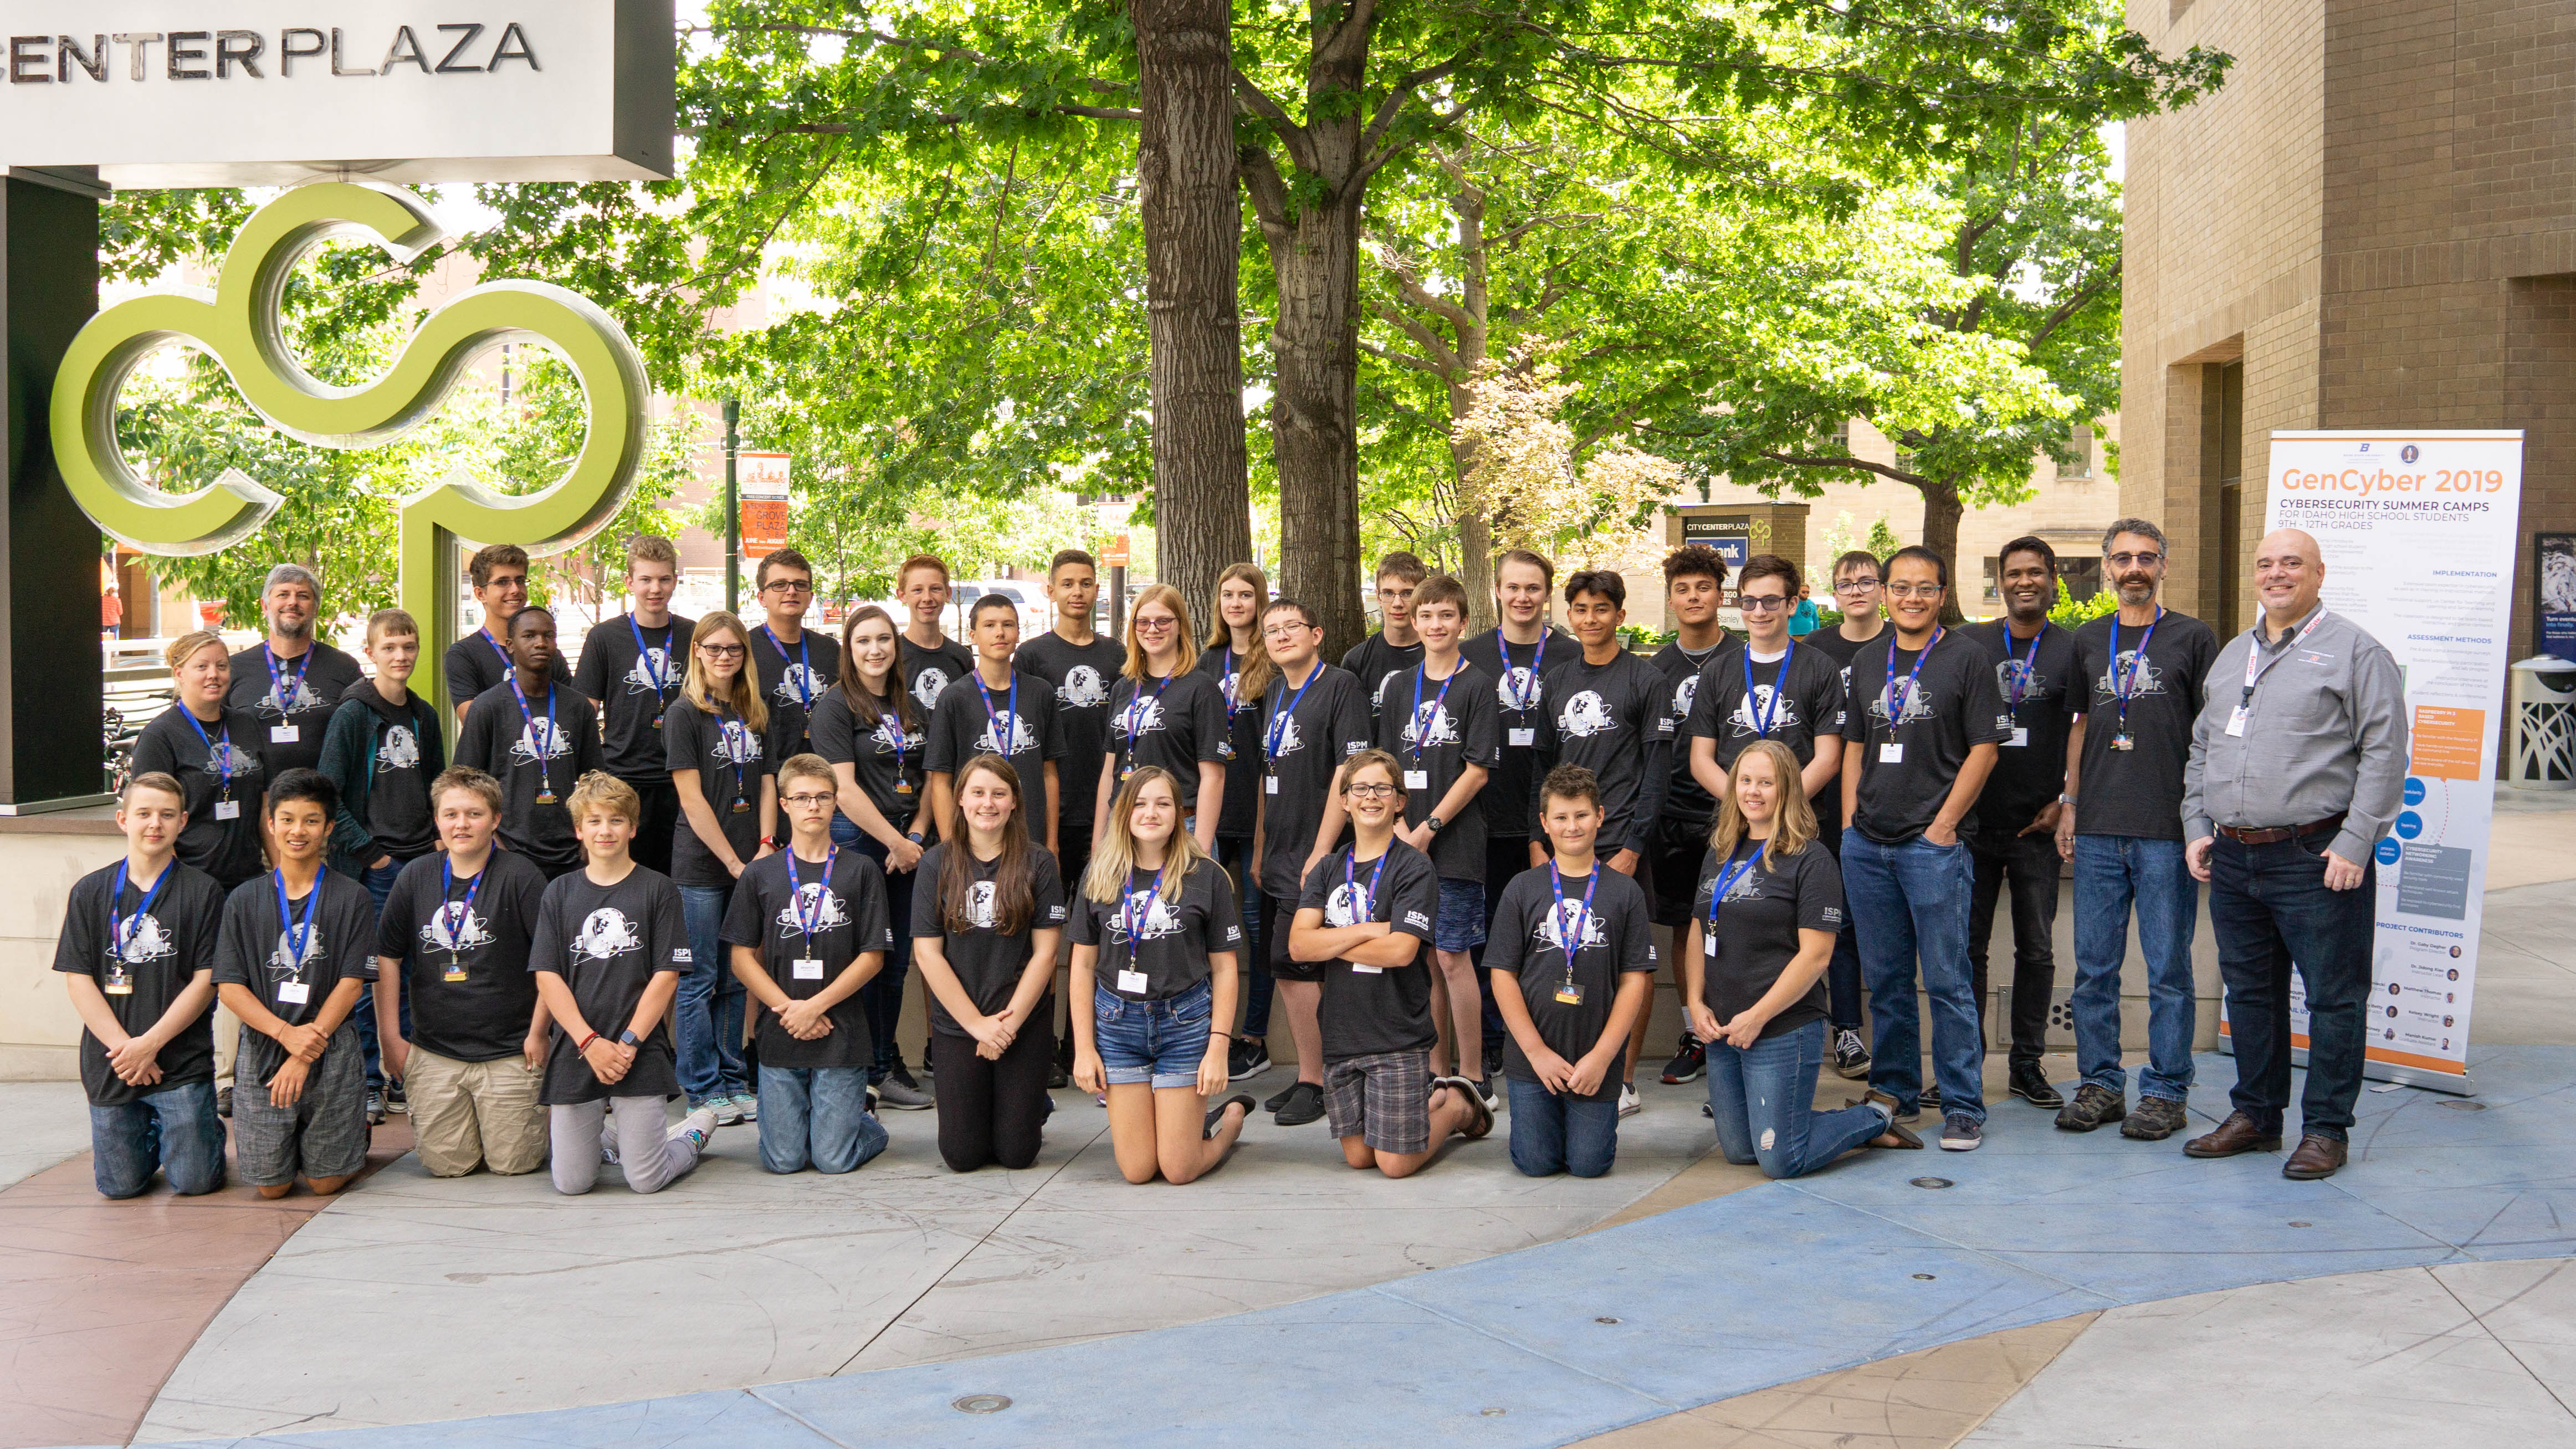 Gencyber Student Camp 2019 picture